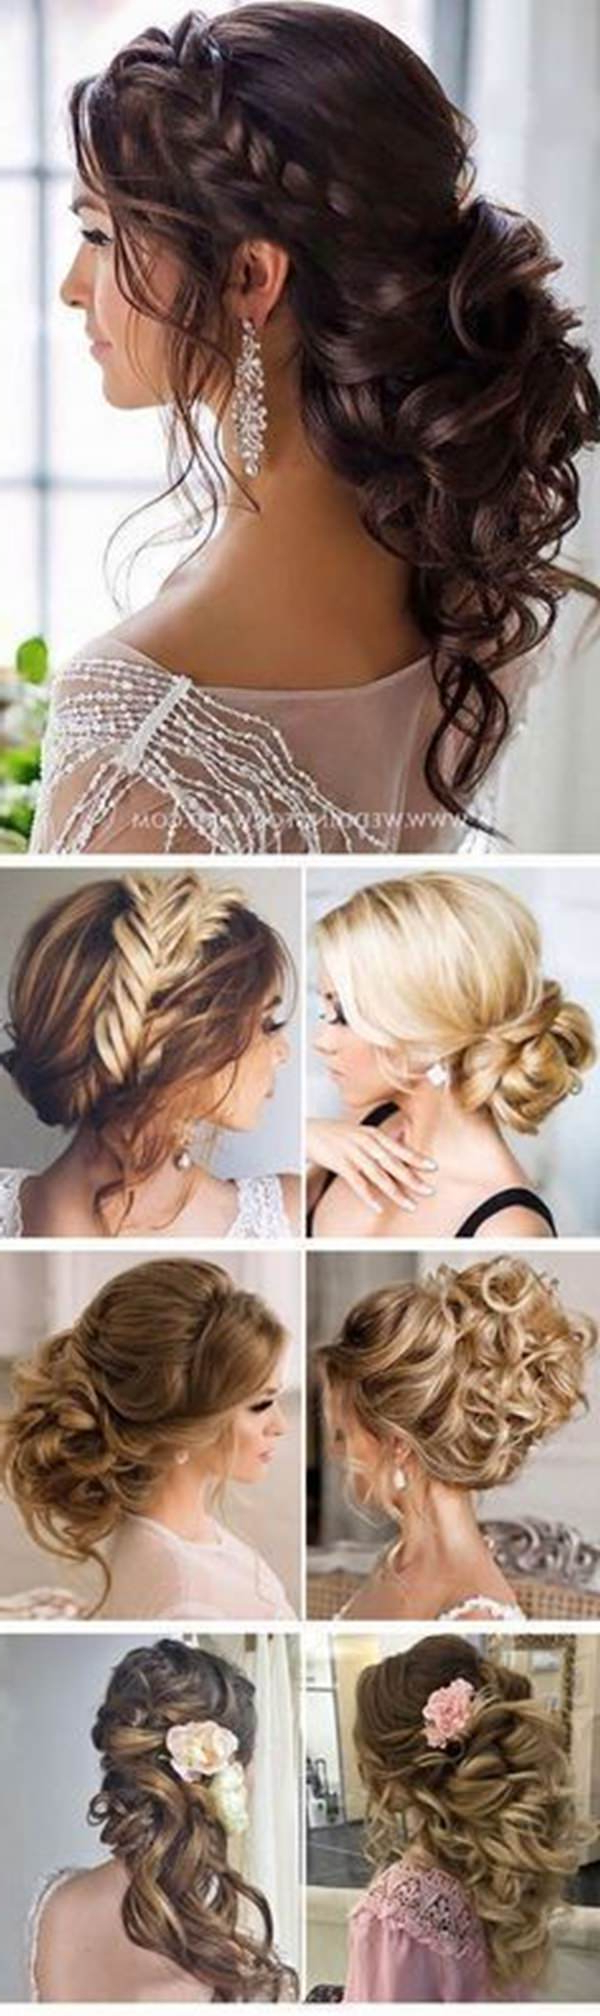 2017 Volumized Low Chignon Prom Hairstyles Within 154 Updos For Long Hair Featuring Beautiful Braids And Buns (View 16 of 20)